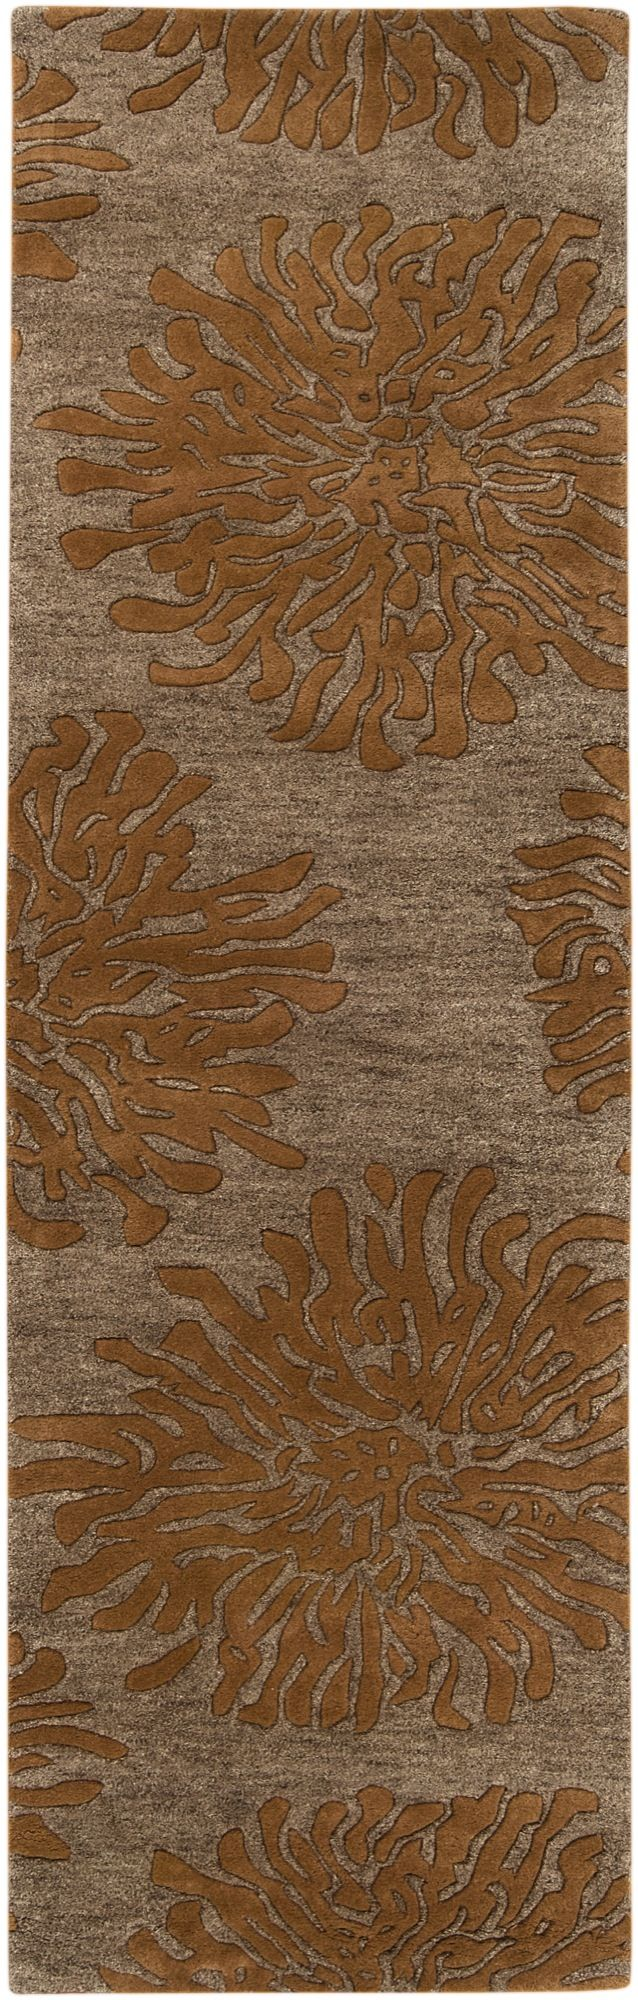 surya bombay contemporary area rug collection